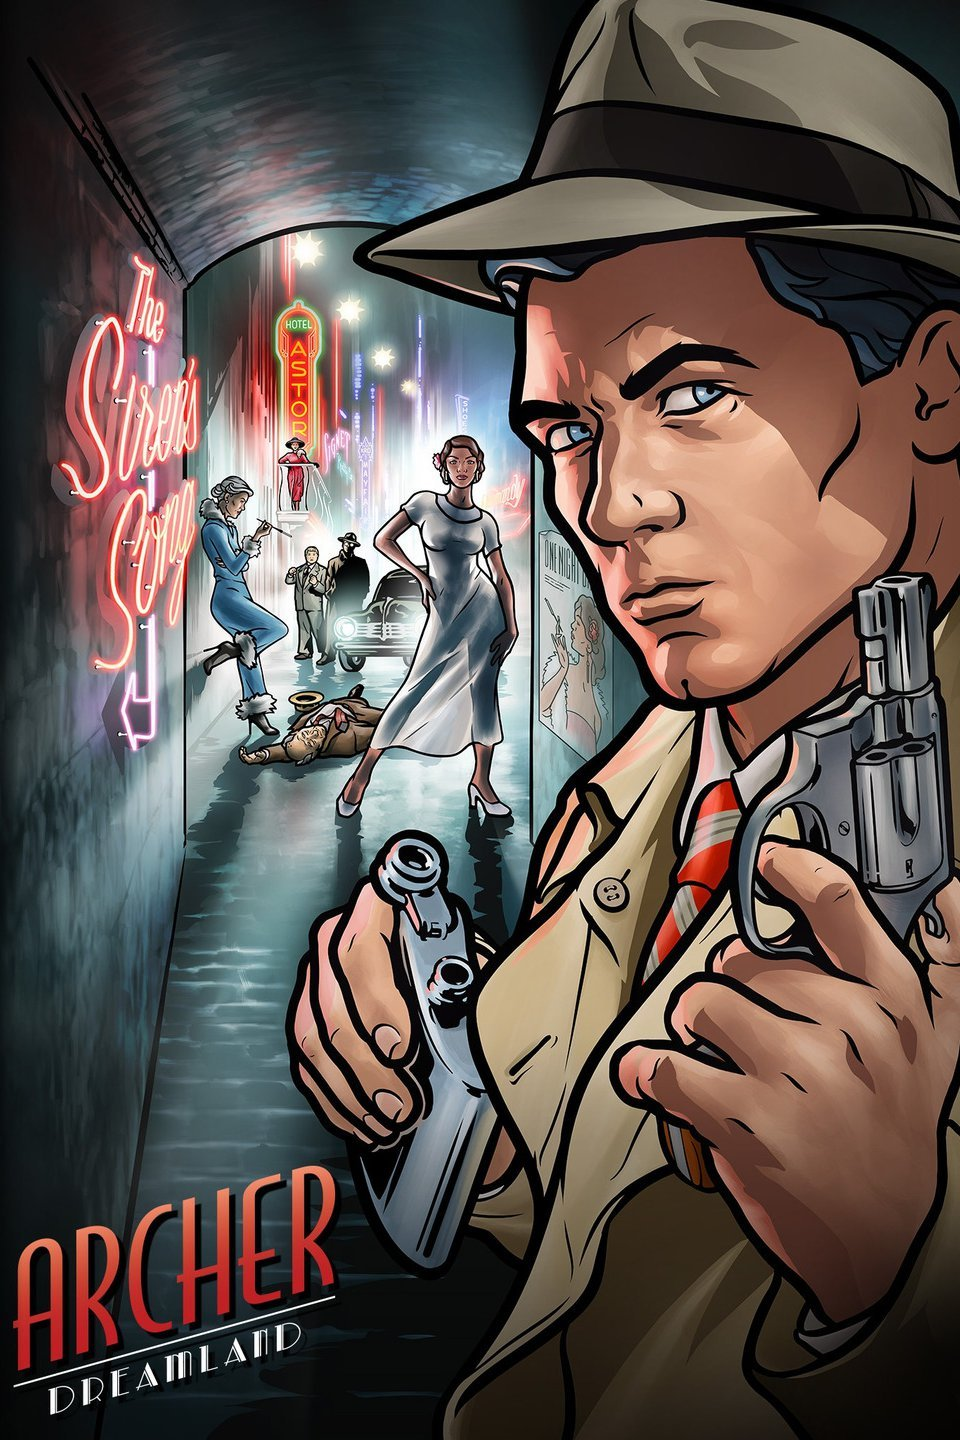 Archer Season 8 Episode 3 480p WEB-DL 100MB